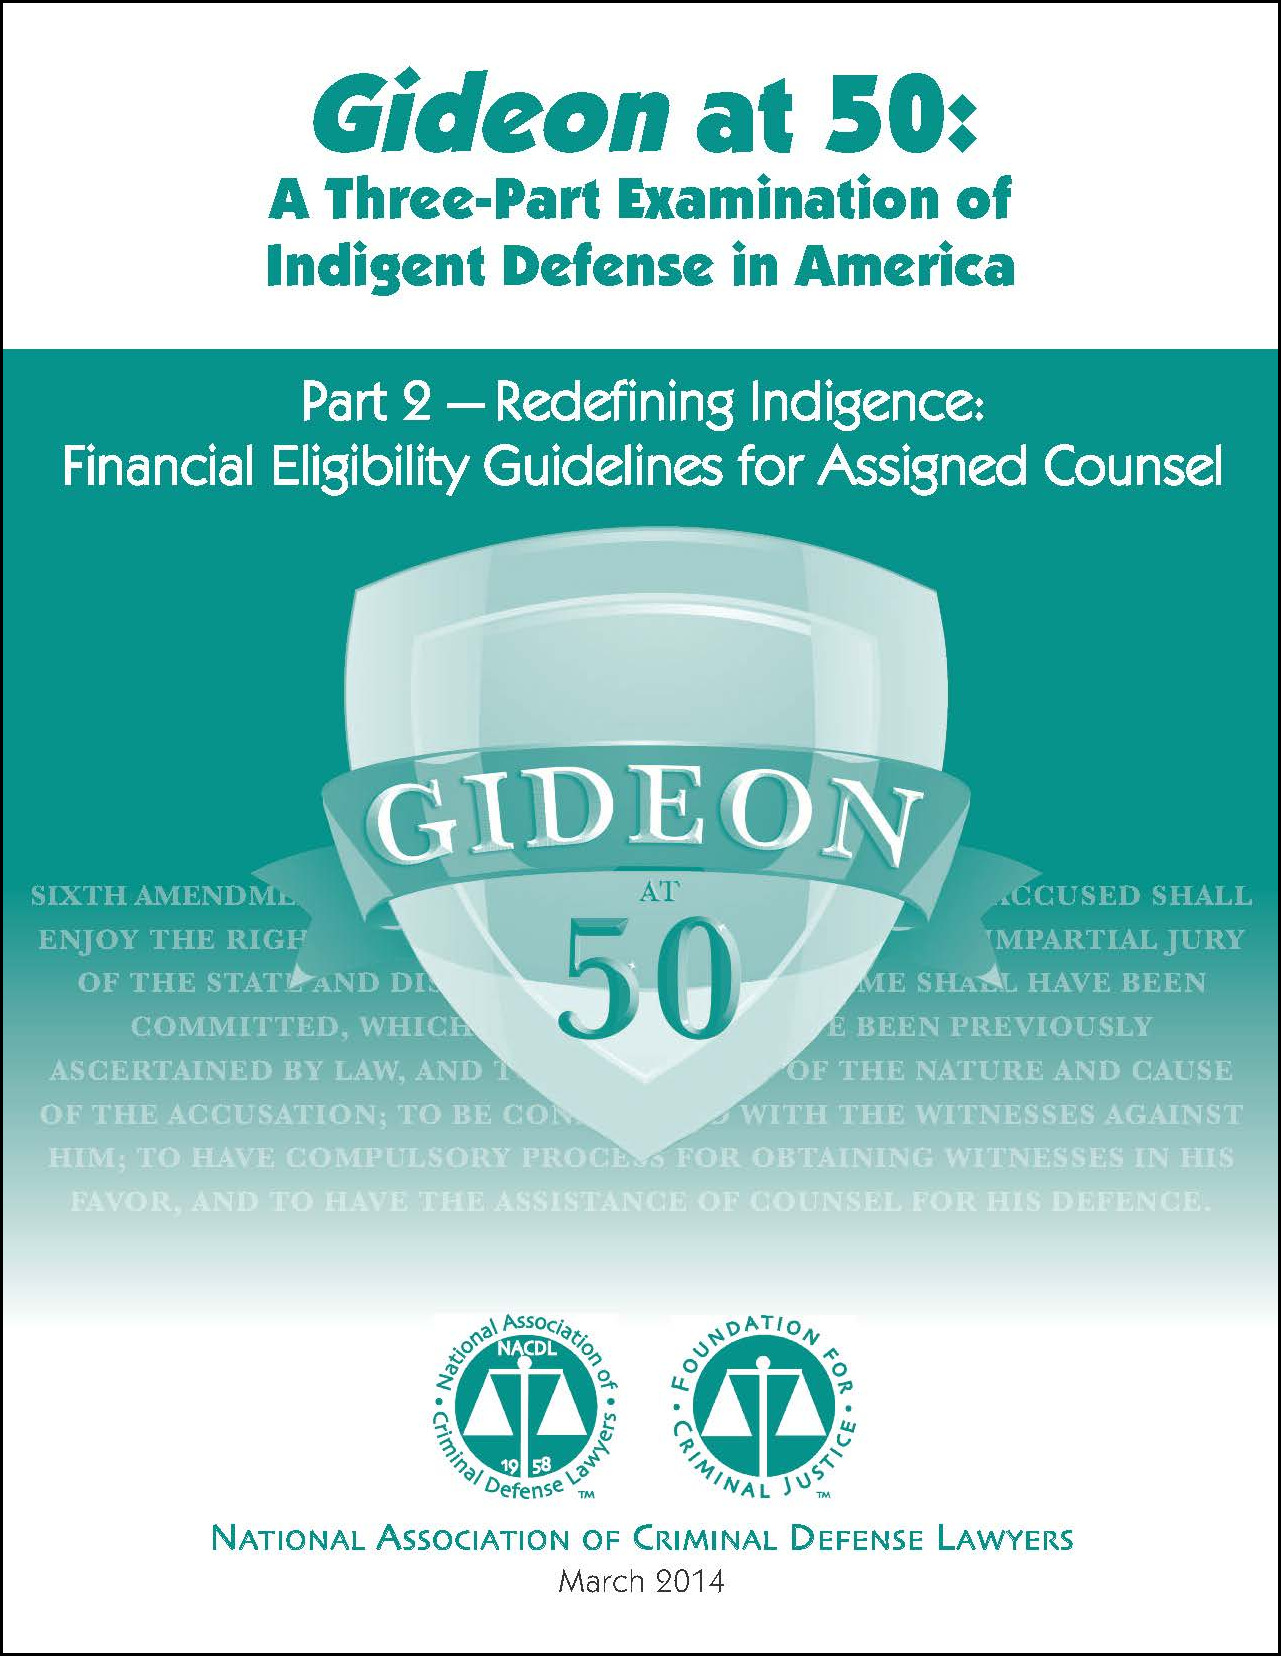 Gideon at 50: Redefining Indigence: Financial Eligibility Guidelines for Assigned Counsel (Part 2) Cover